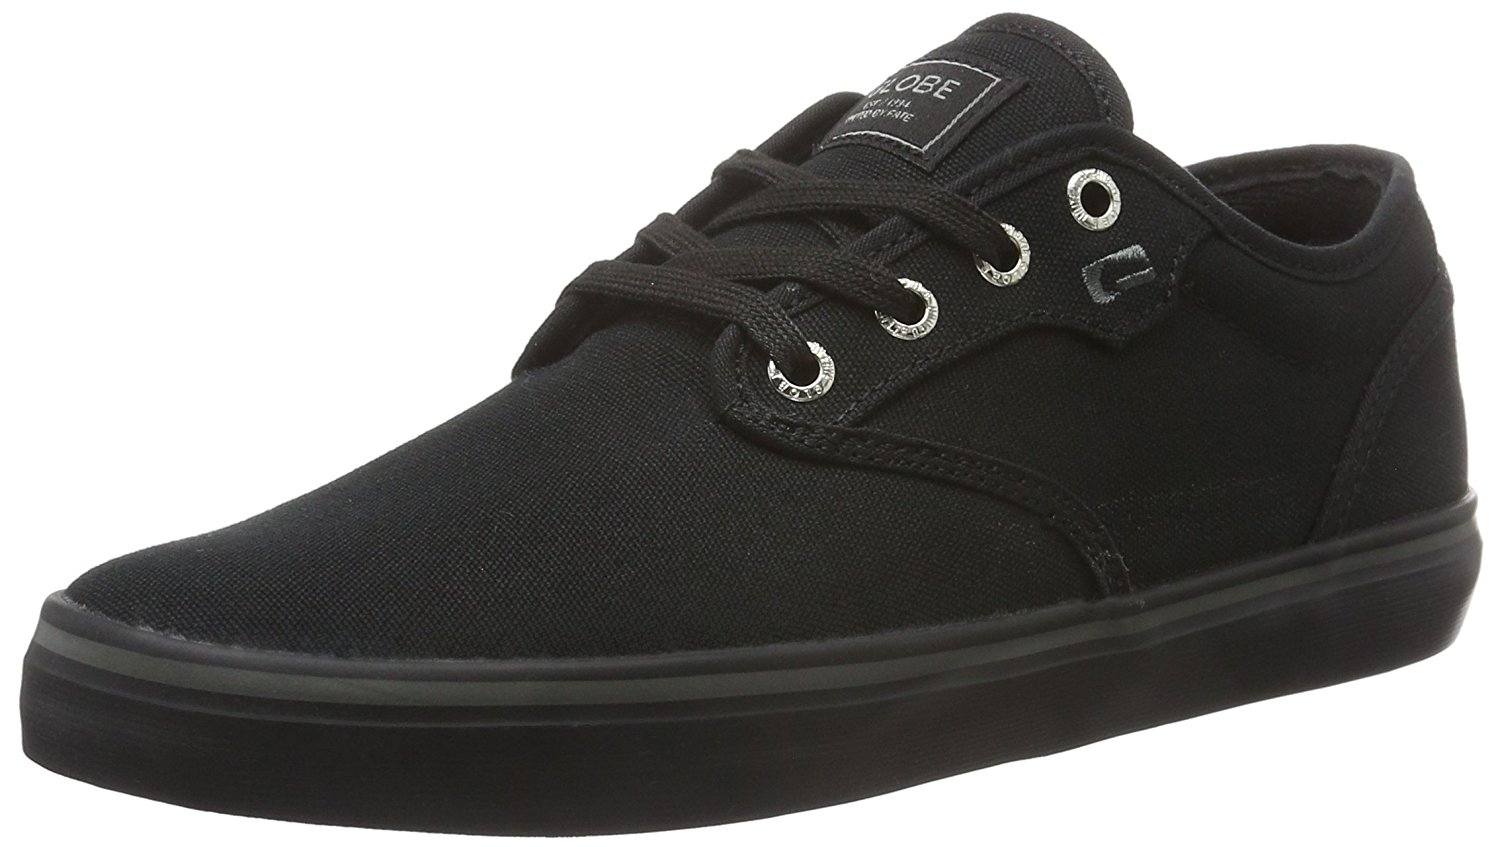 Globe Shoes Lace Up Low Shoe Motley Mid Kids Black Warm Padding Clothing, Shoes & Accessories